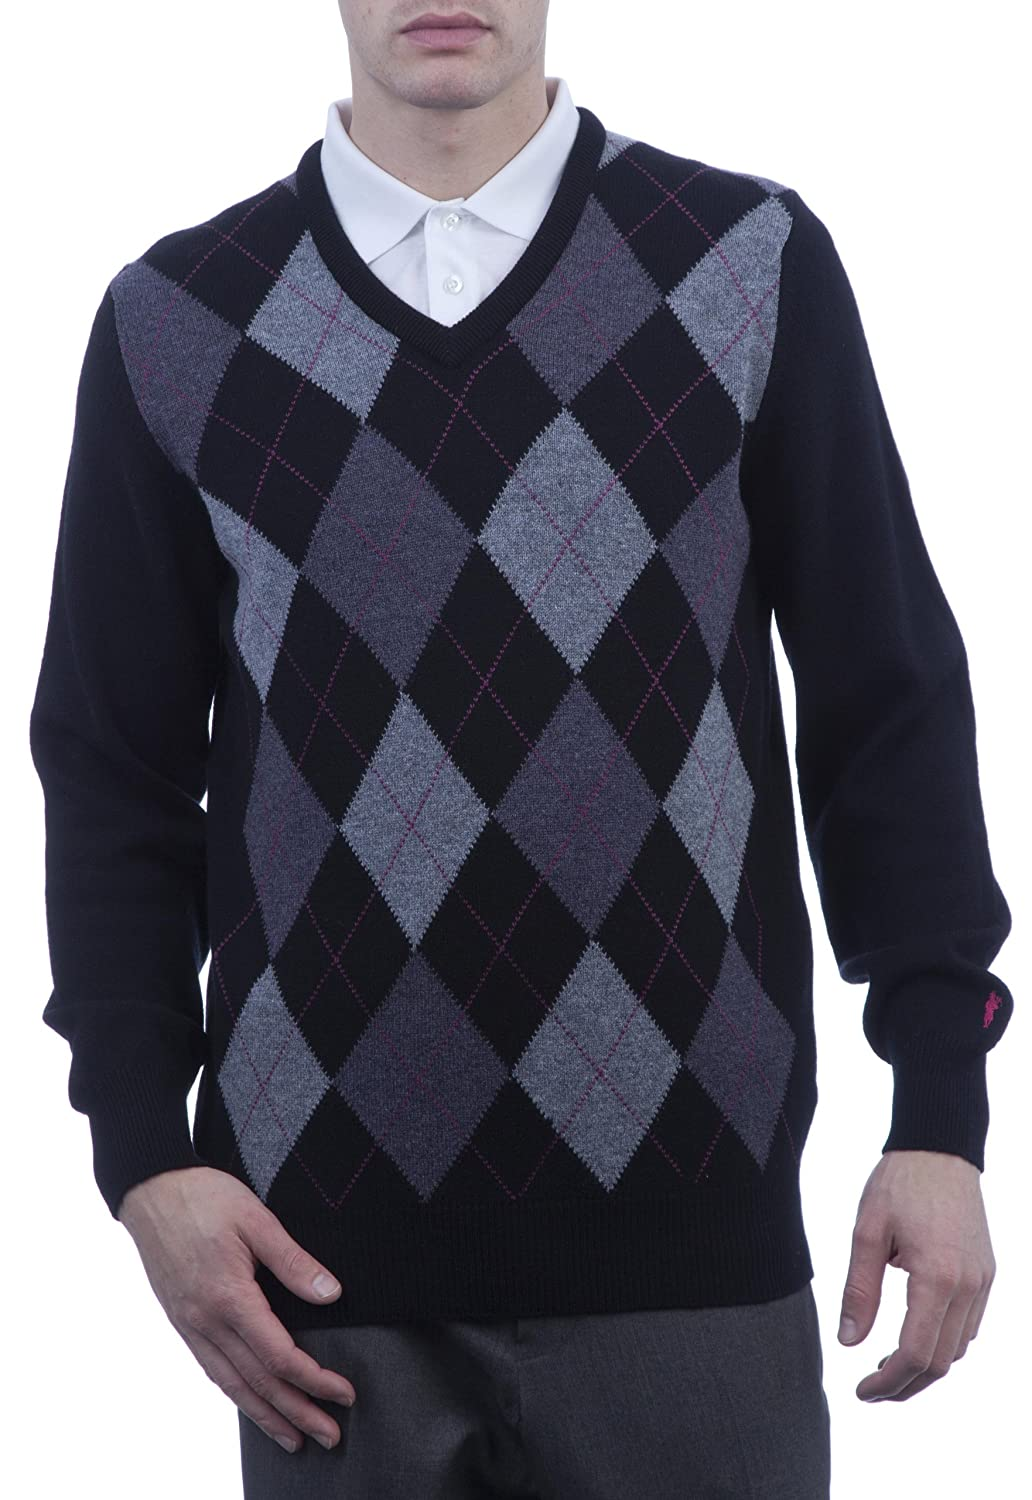 Great and British Knitwear Men's 100% Lambswool Argyle V Neck Jumper. Made In Scotland